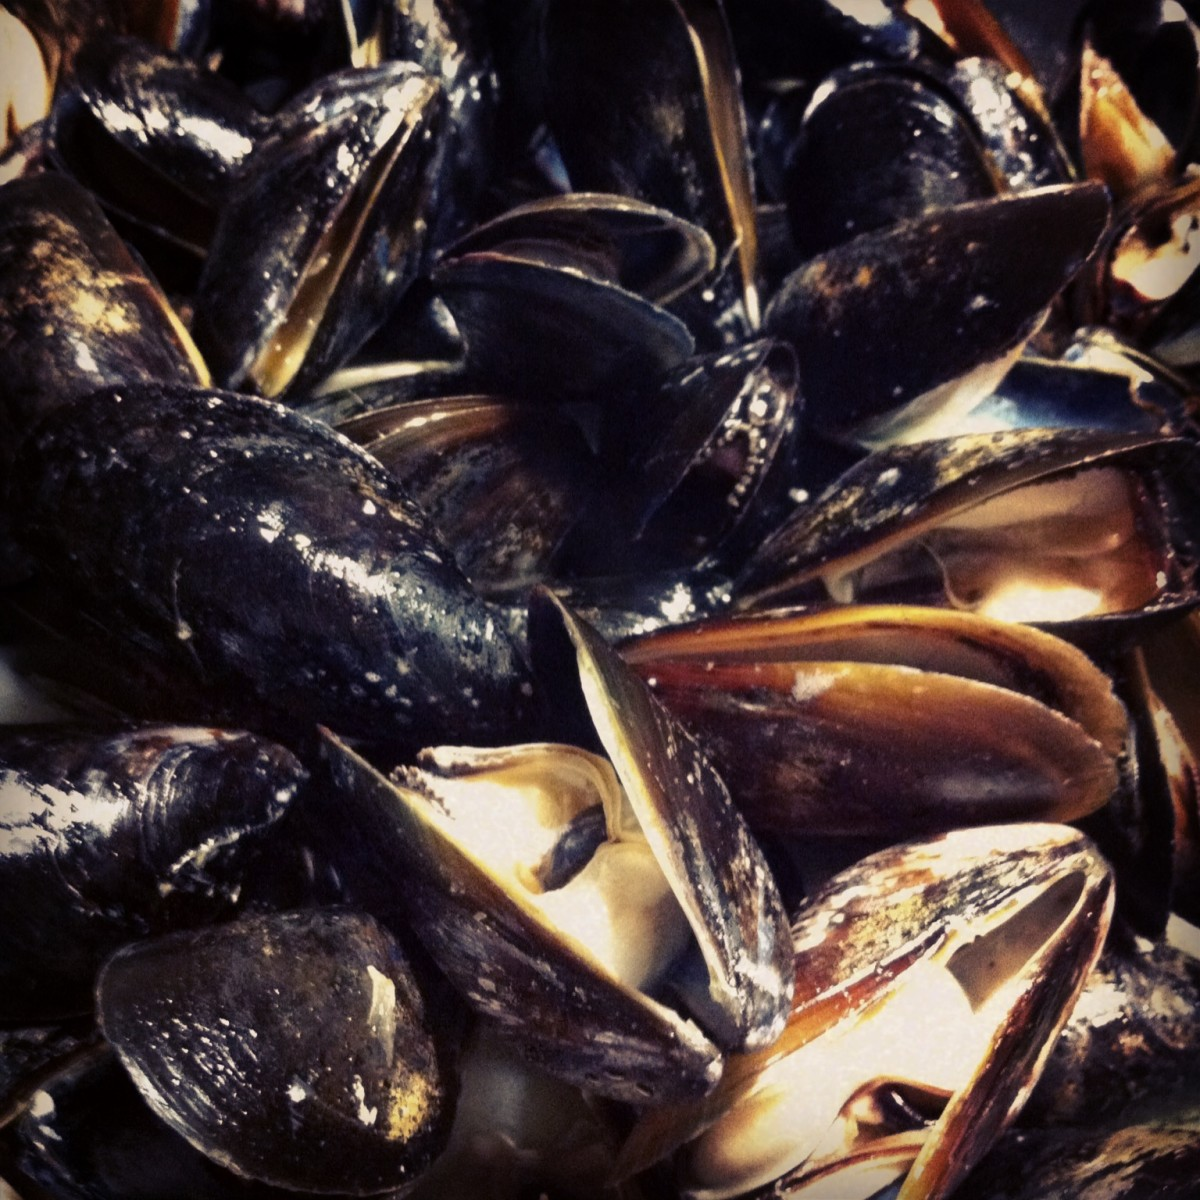 Steamed mussels are a healthy choice.